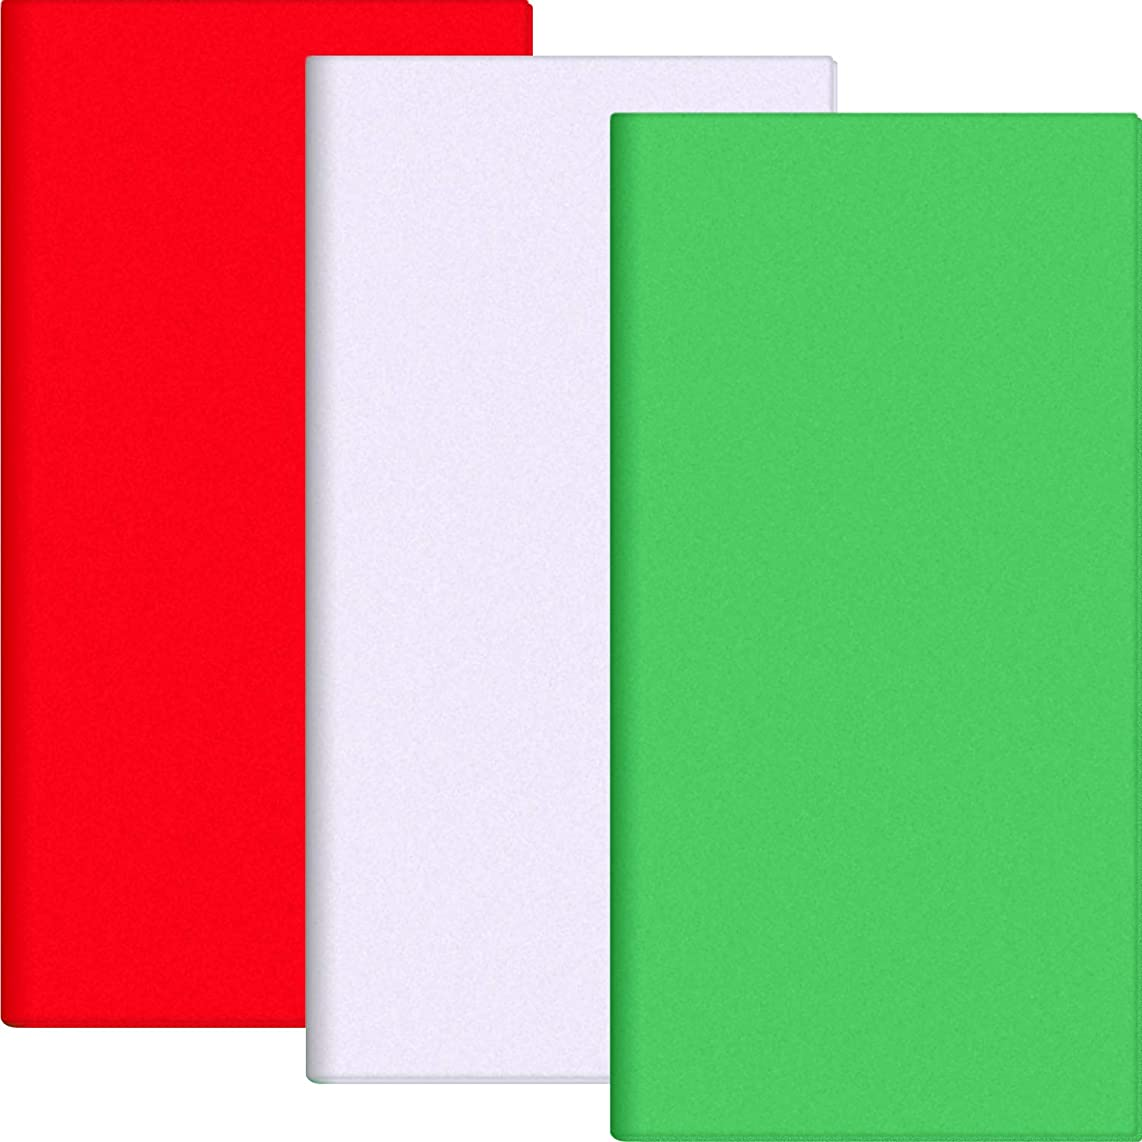 Pangda 100 Sheets 20 by 20 inch Christmas Tissue Paper Gift Art Tissue Paper for Wrapping, Red, Green and White